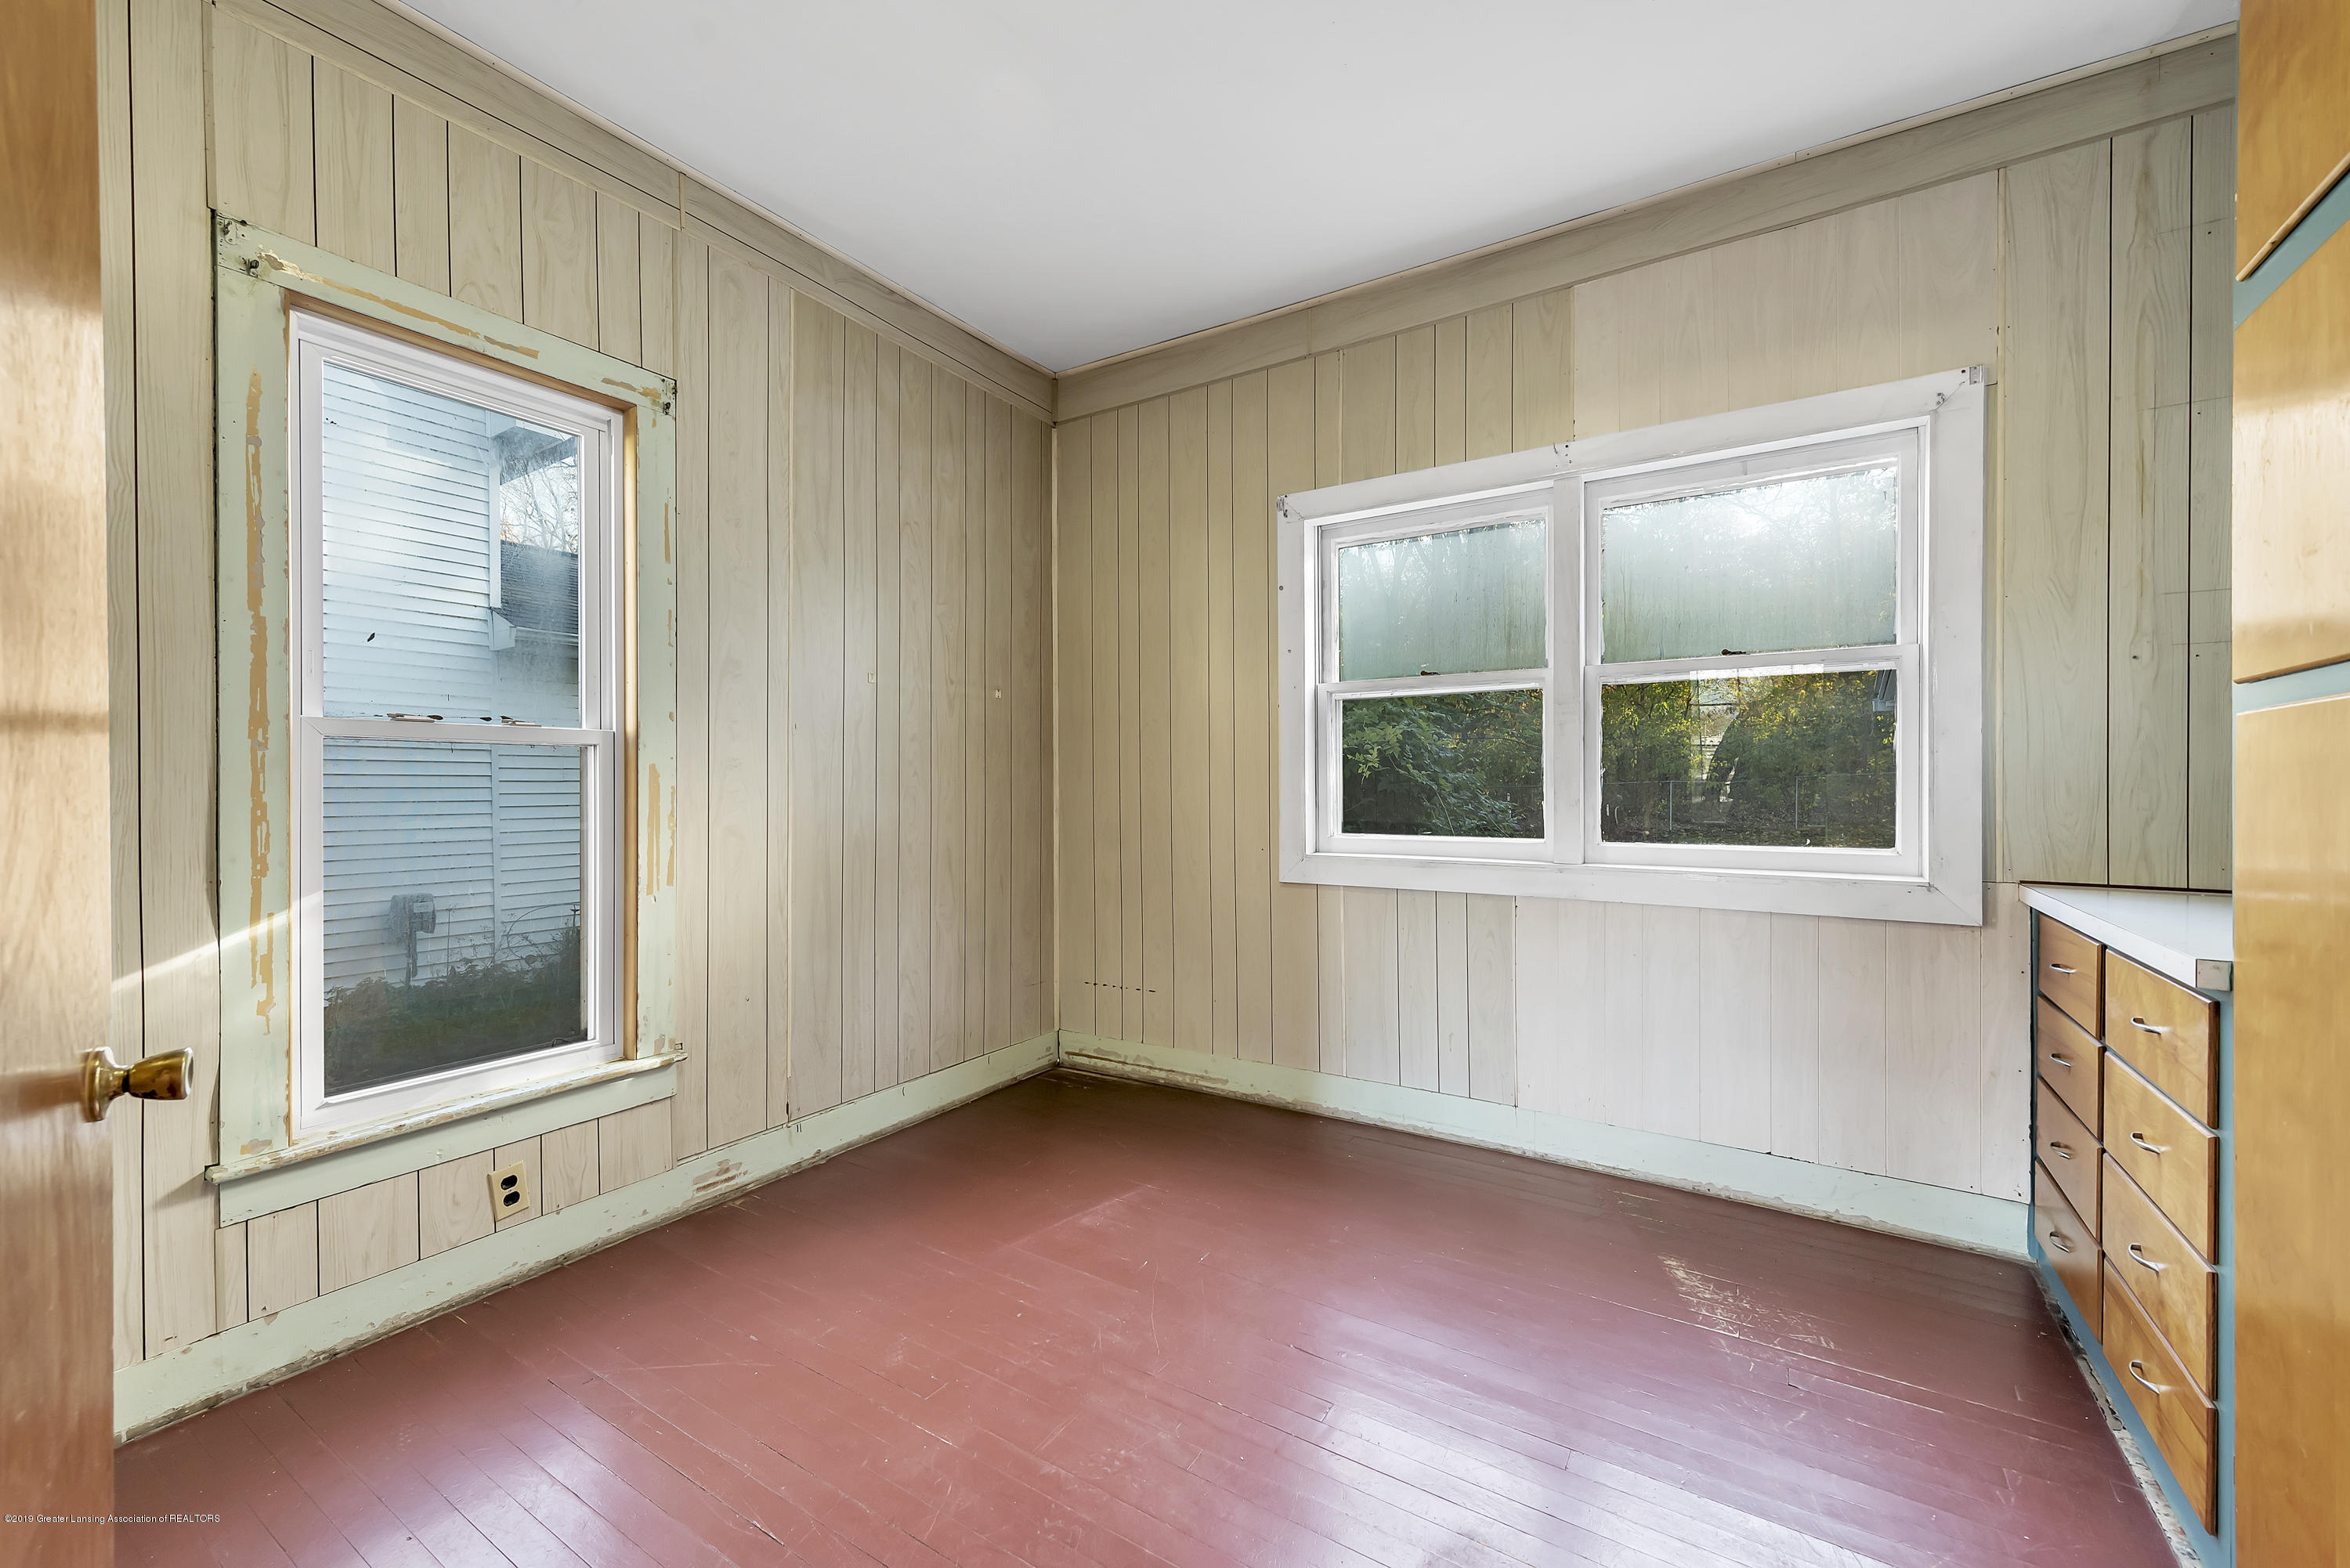 106 N River St - 106-North-River-Street-WindowStill-Real- - 15